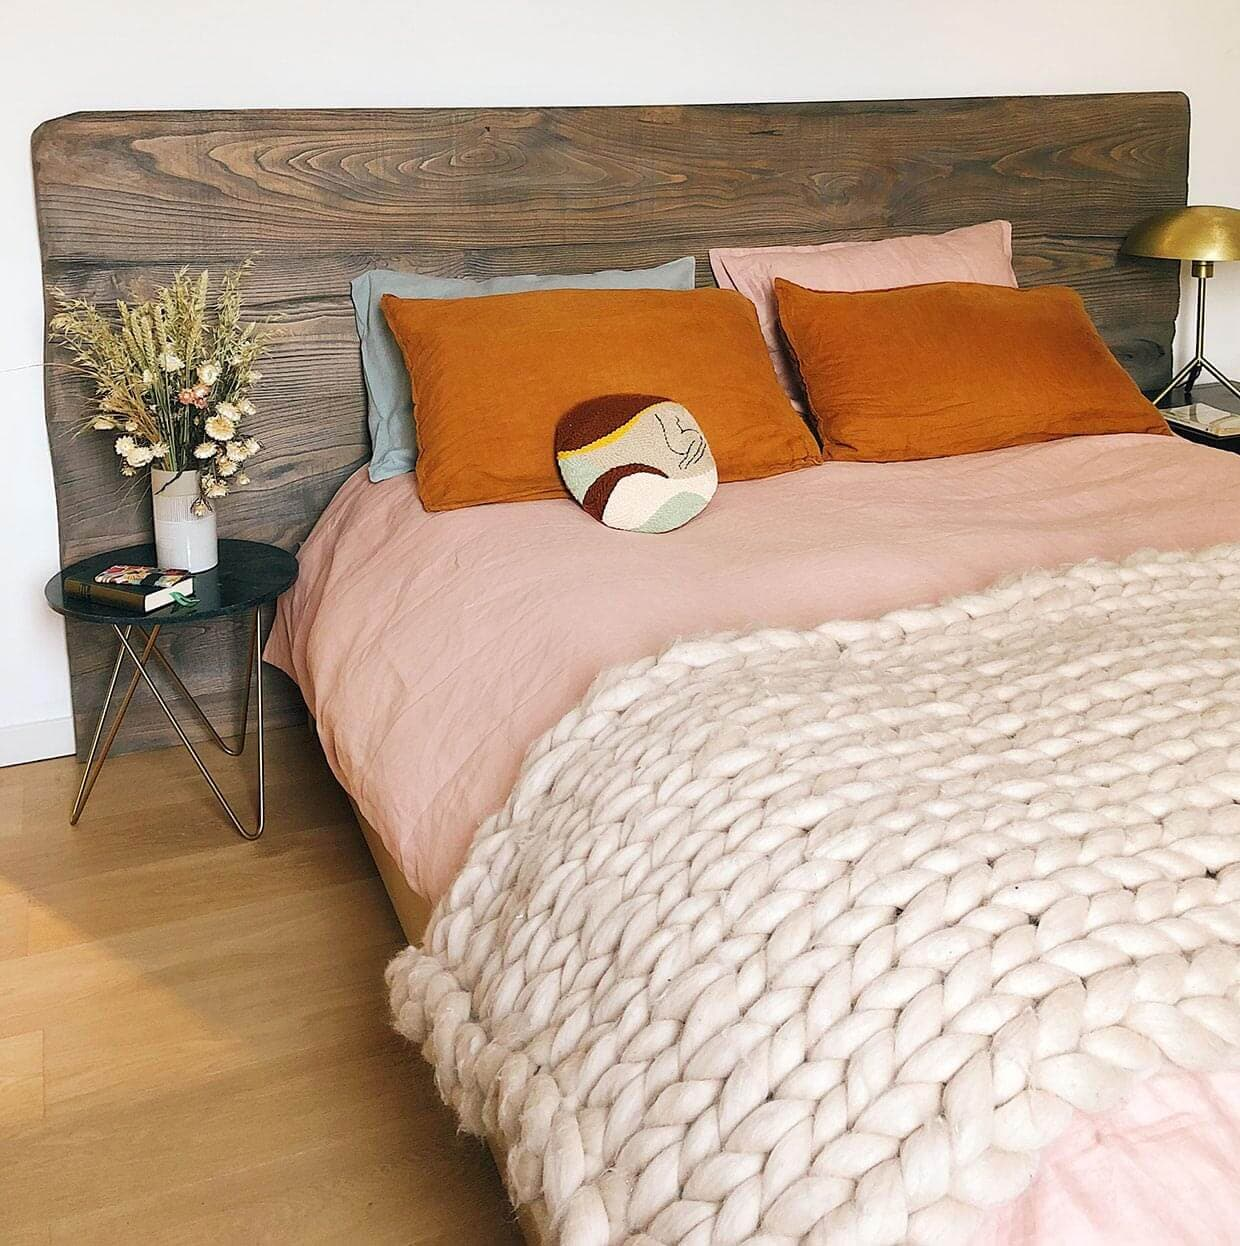 A double bed dressed with orange tones and a wooden headboard